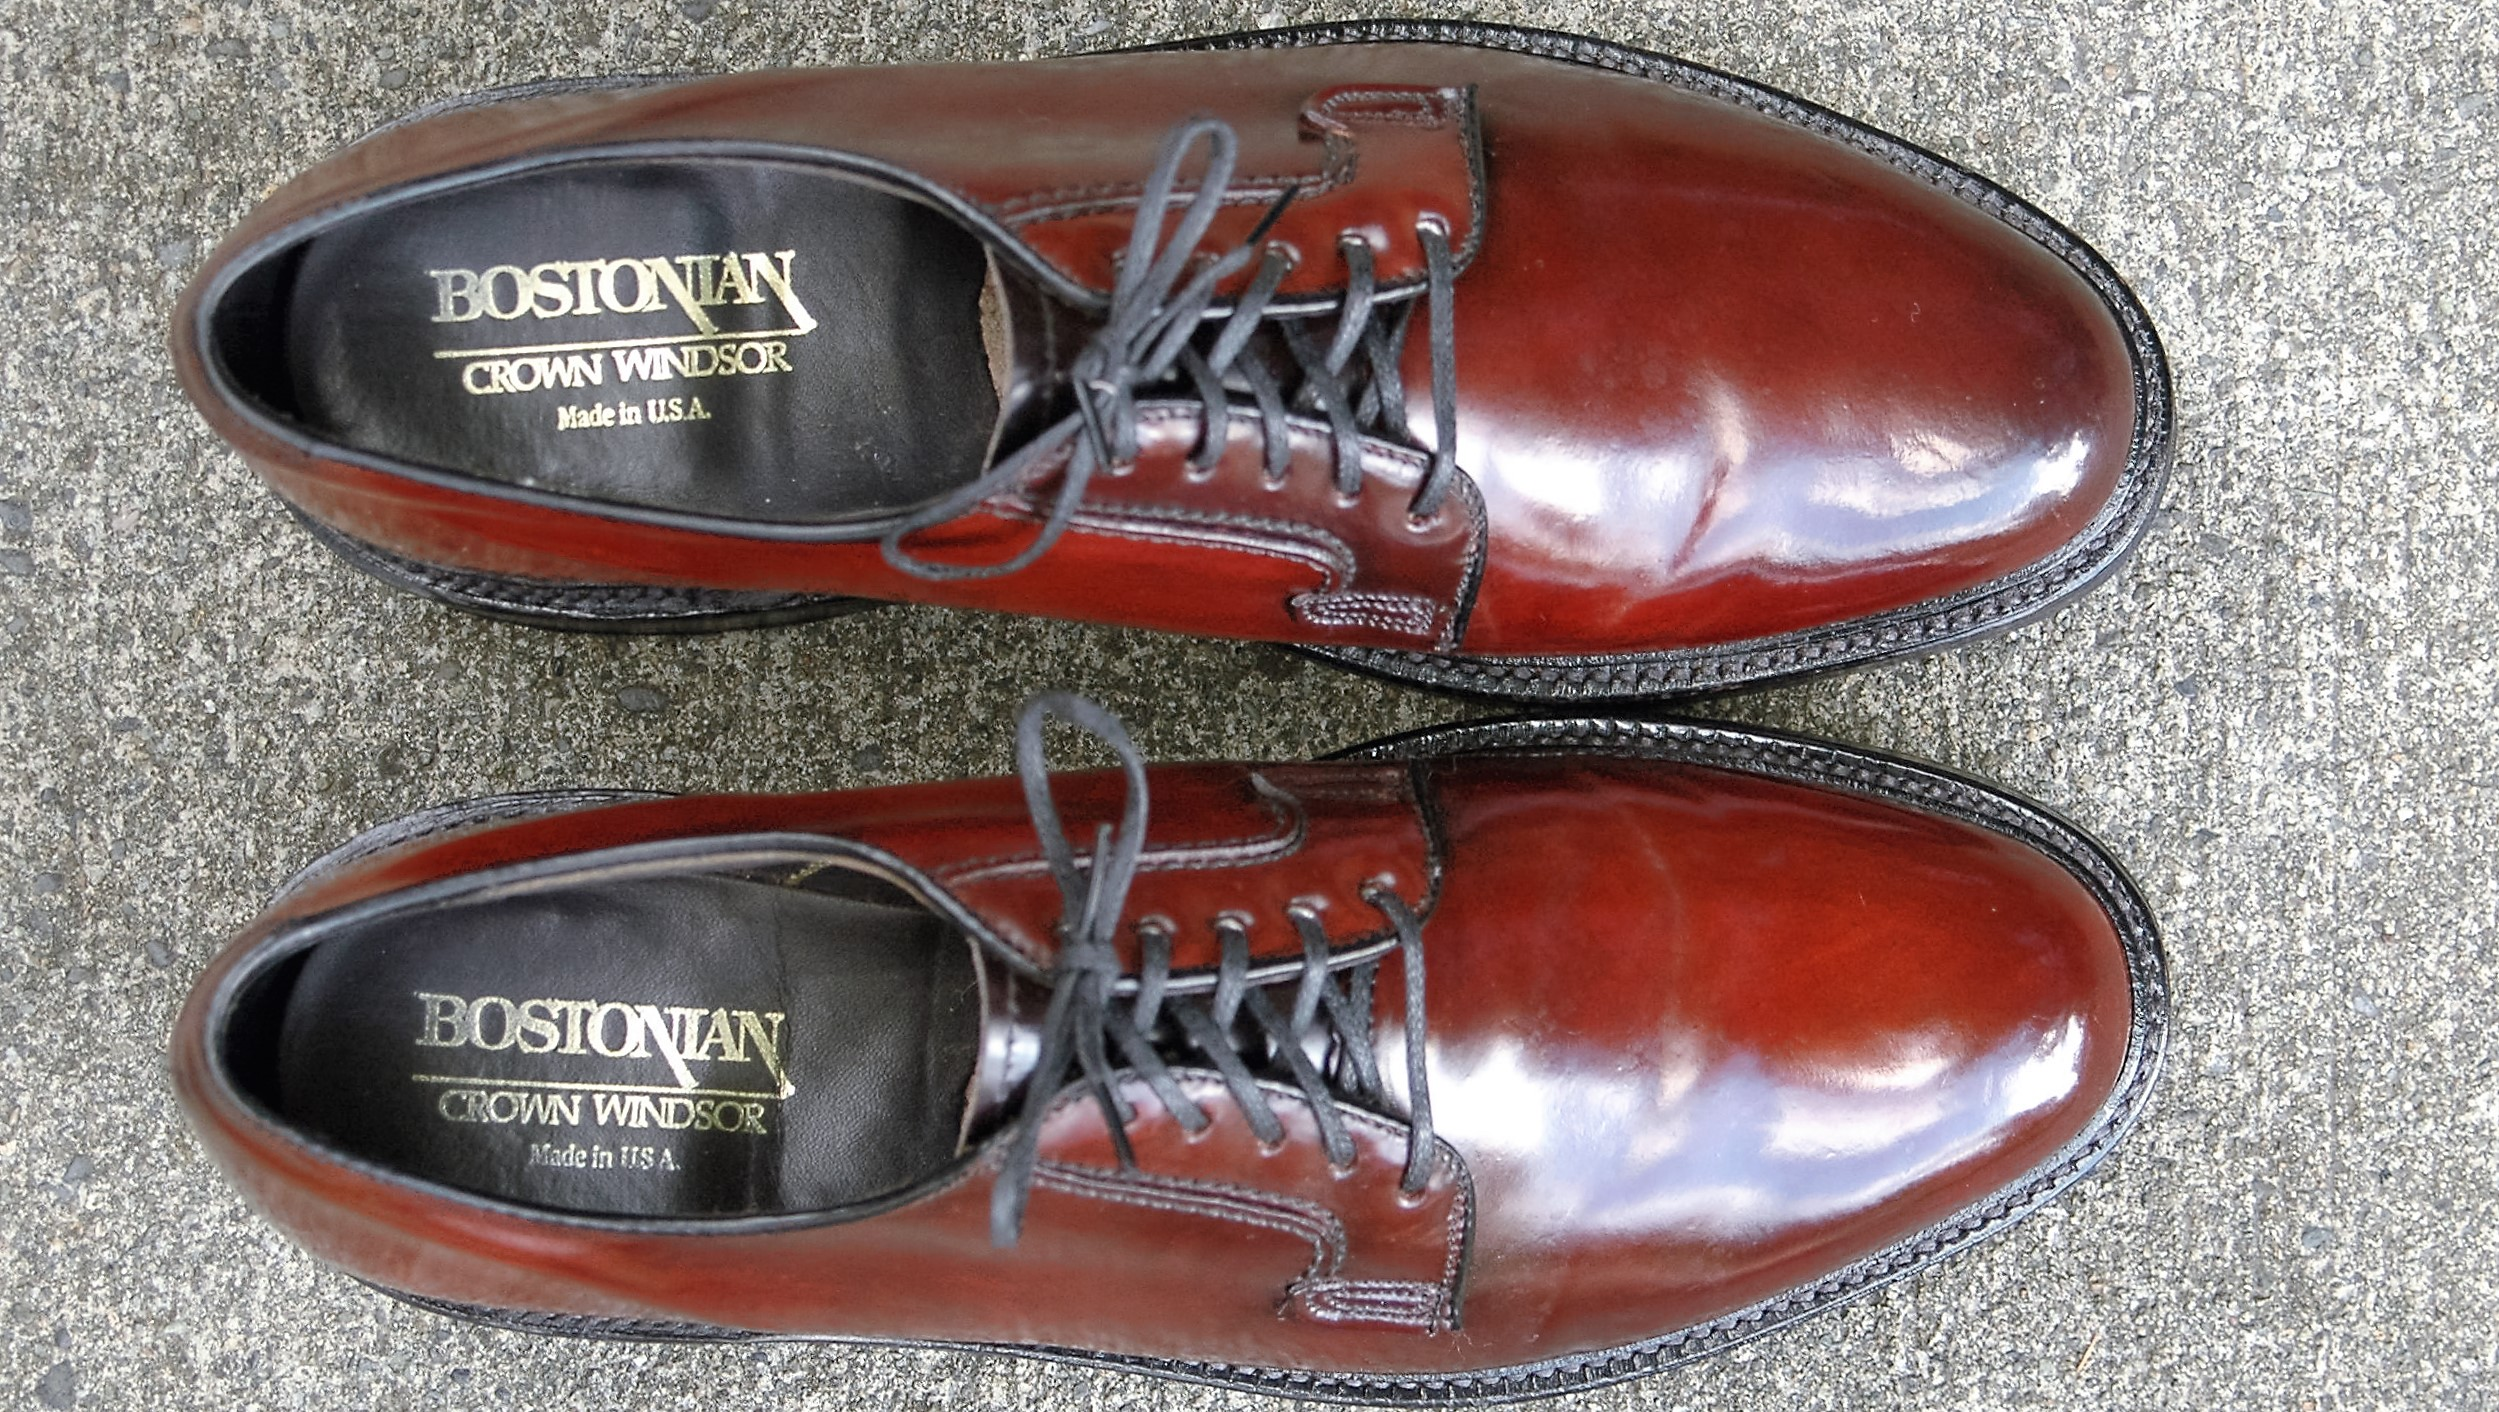 Bostonian Crown Windsor Shell Cordovan 23319 Vcleat